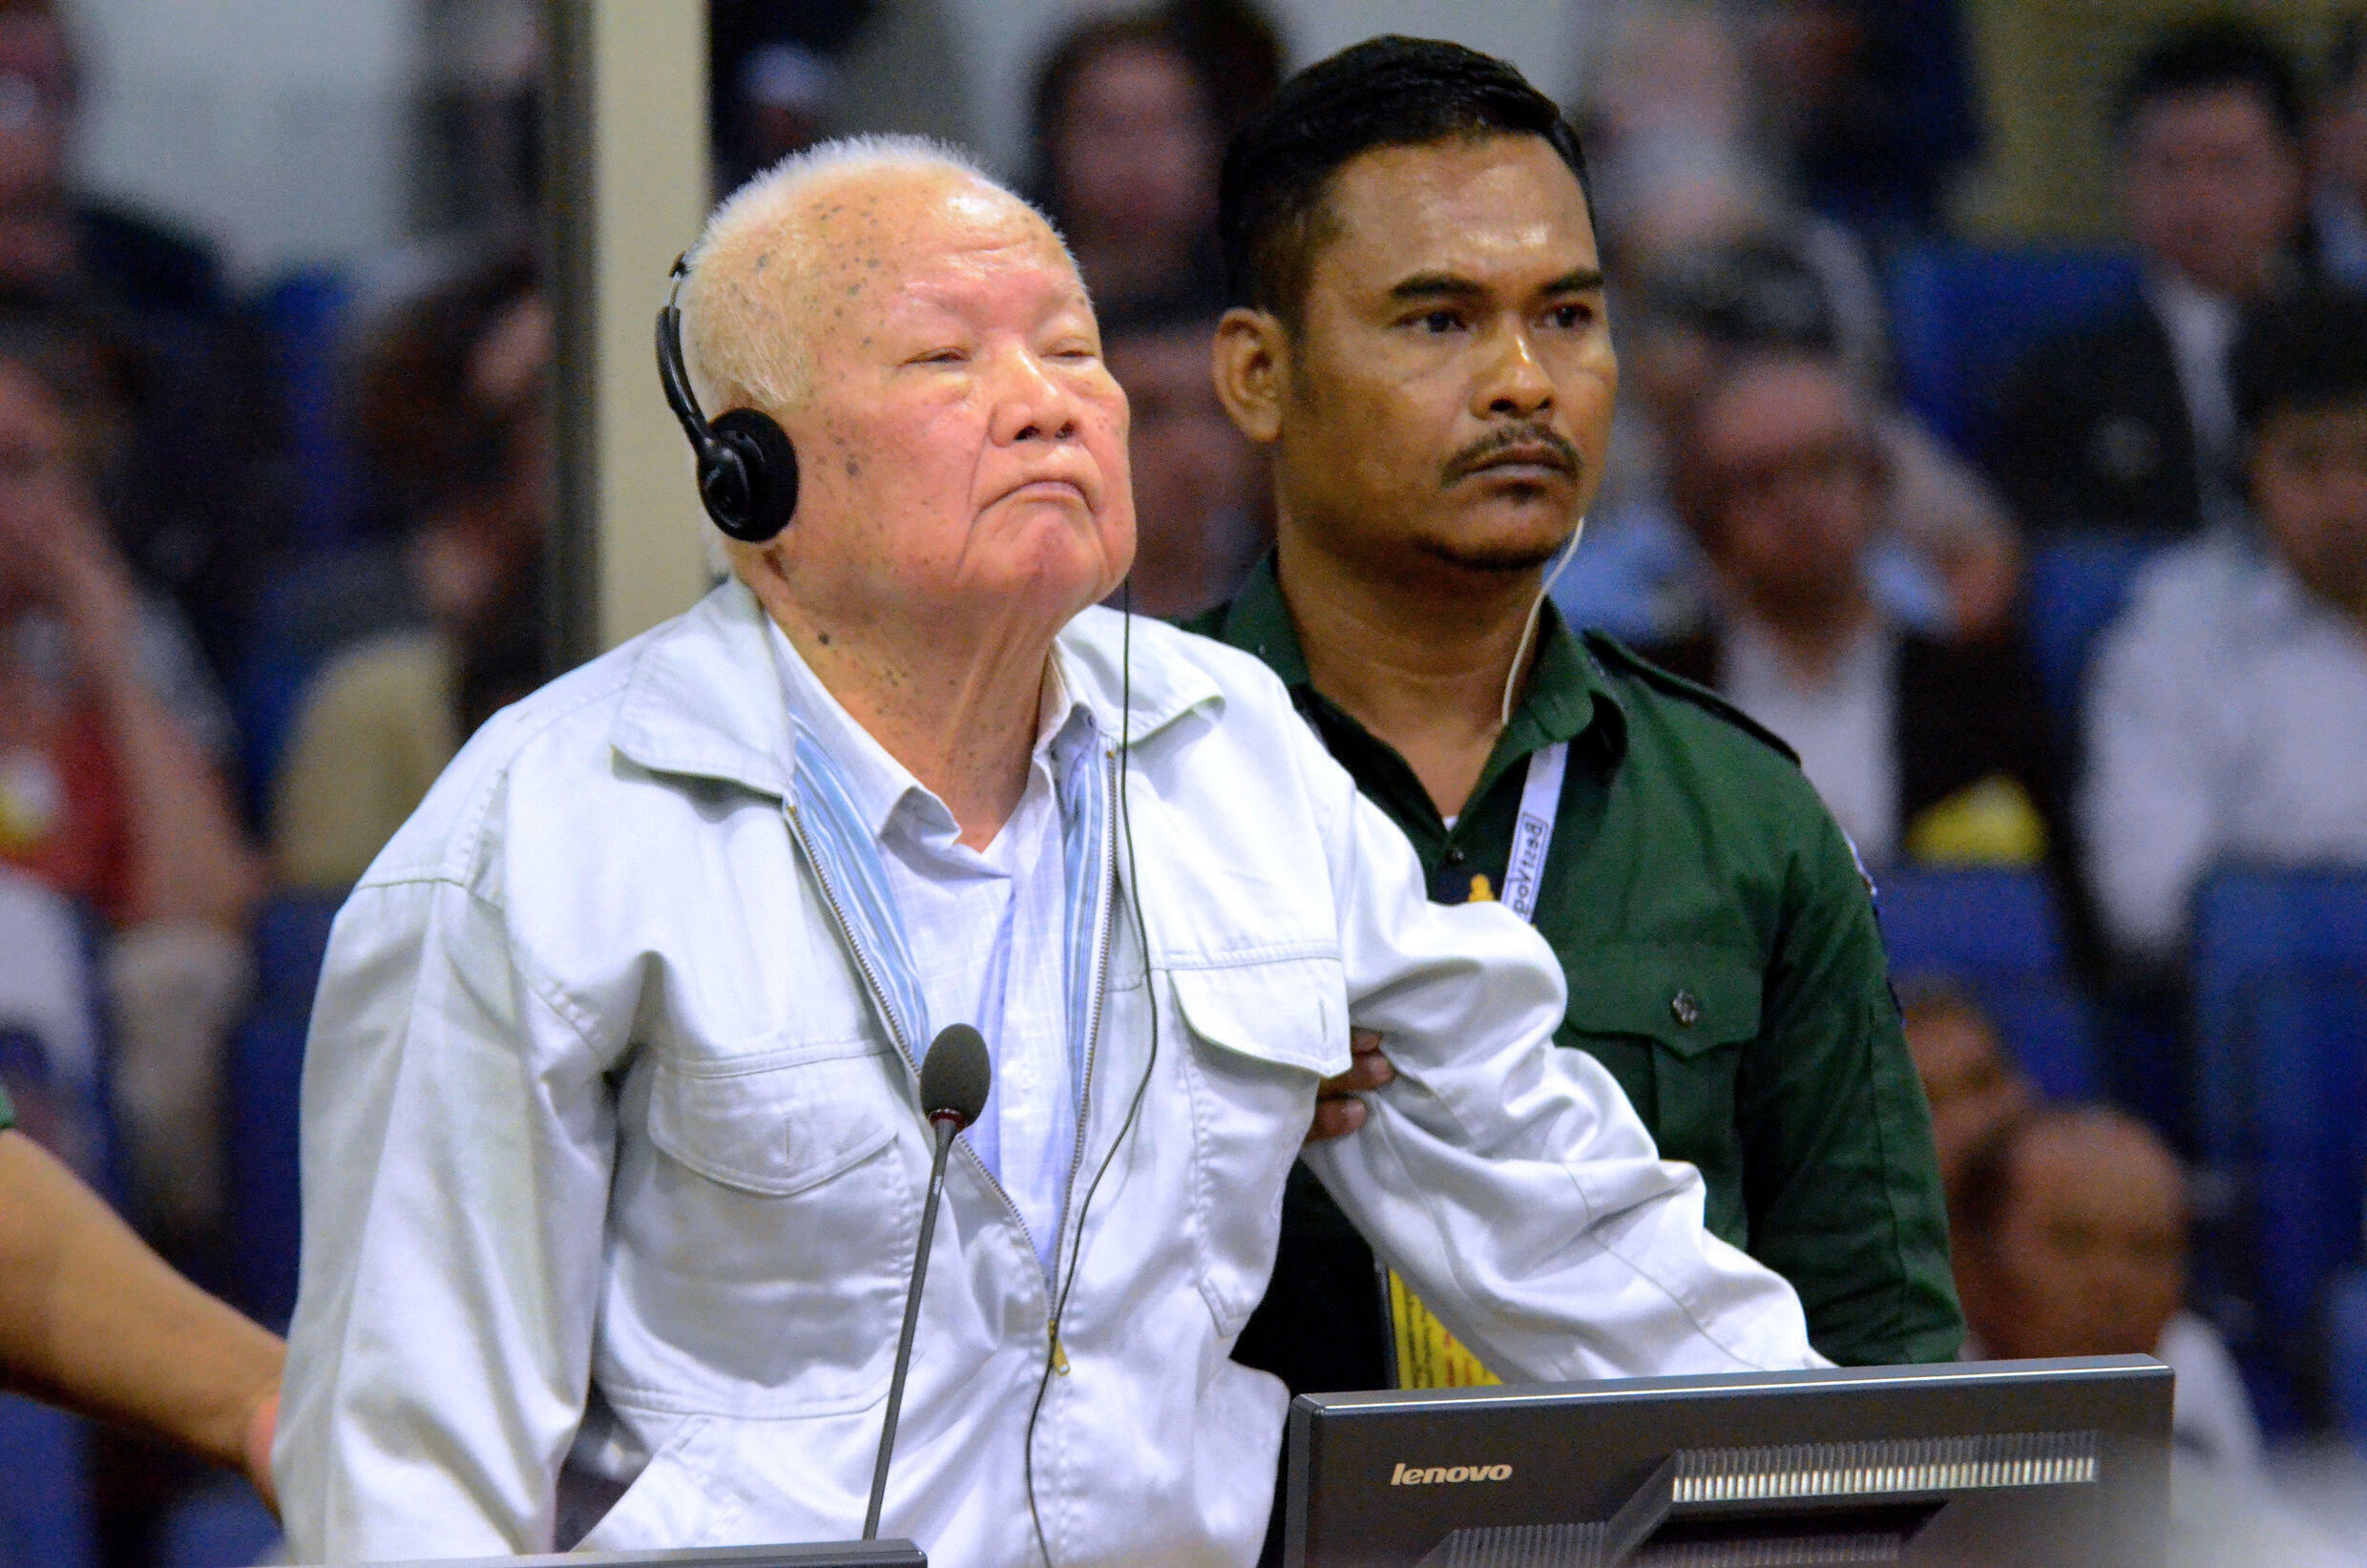 Top Khmer Rouge leader to appeal genocide conviction